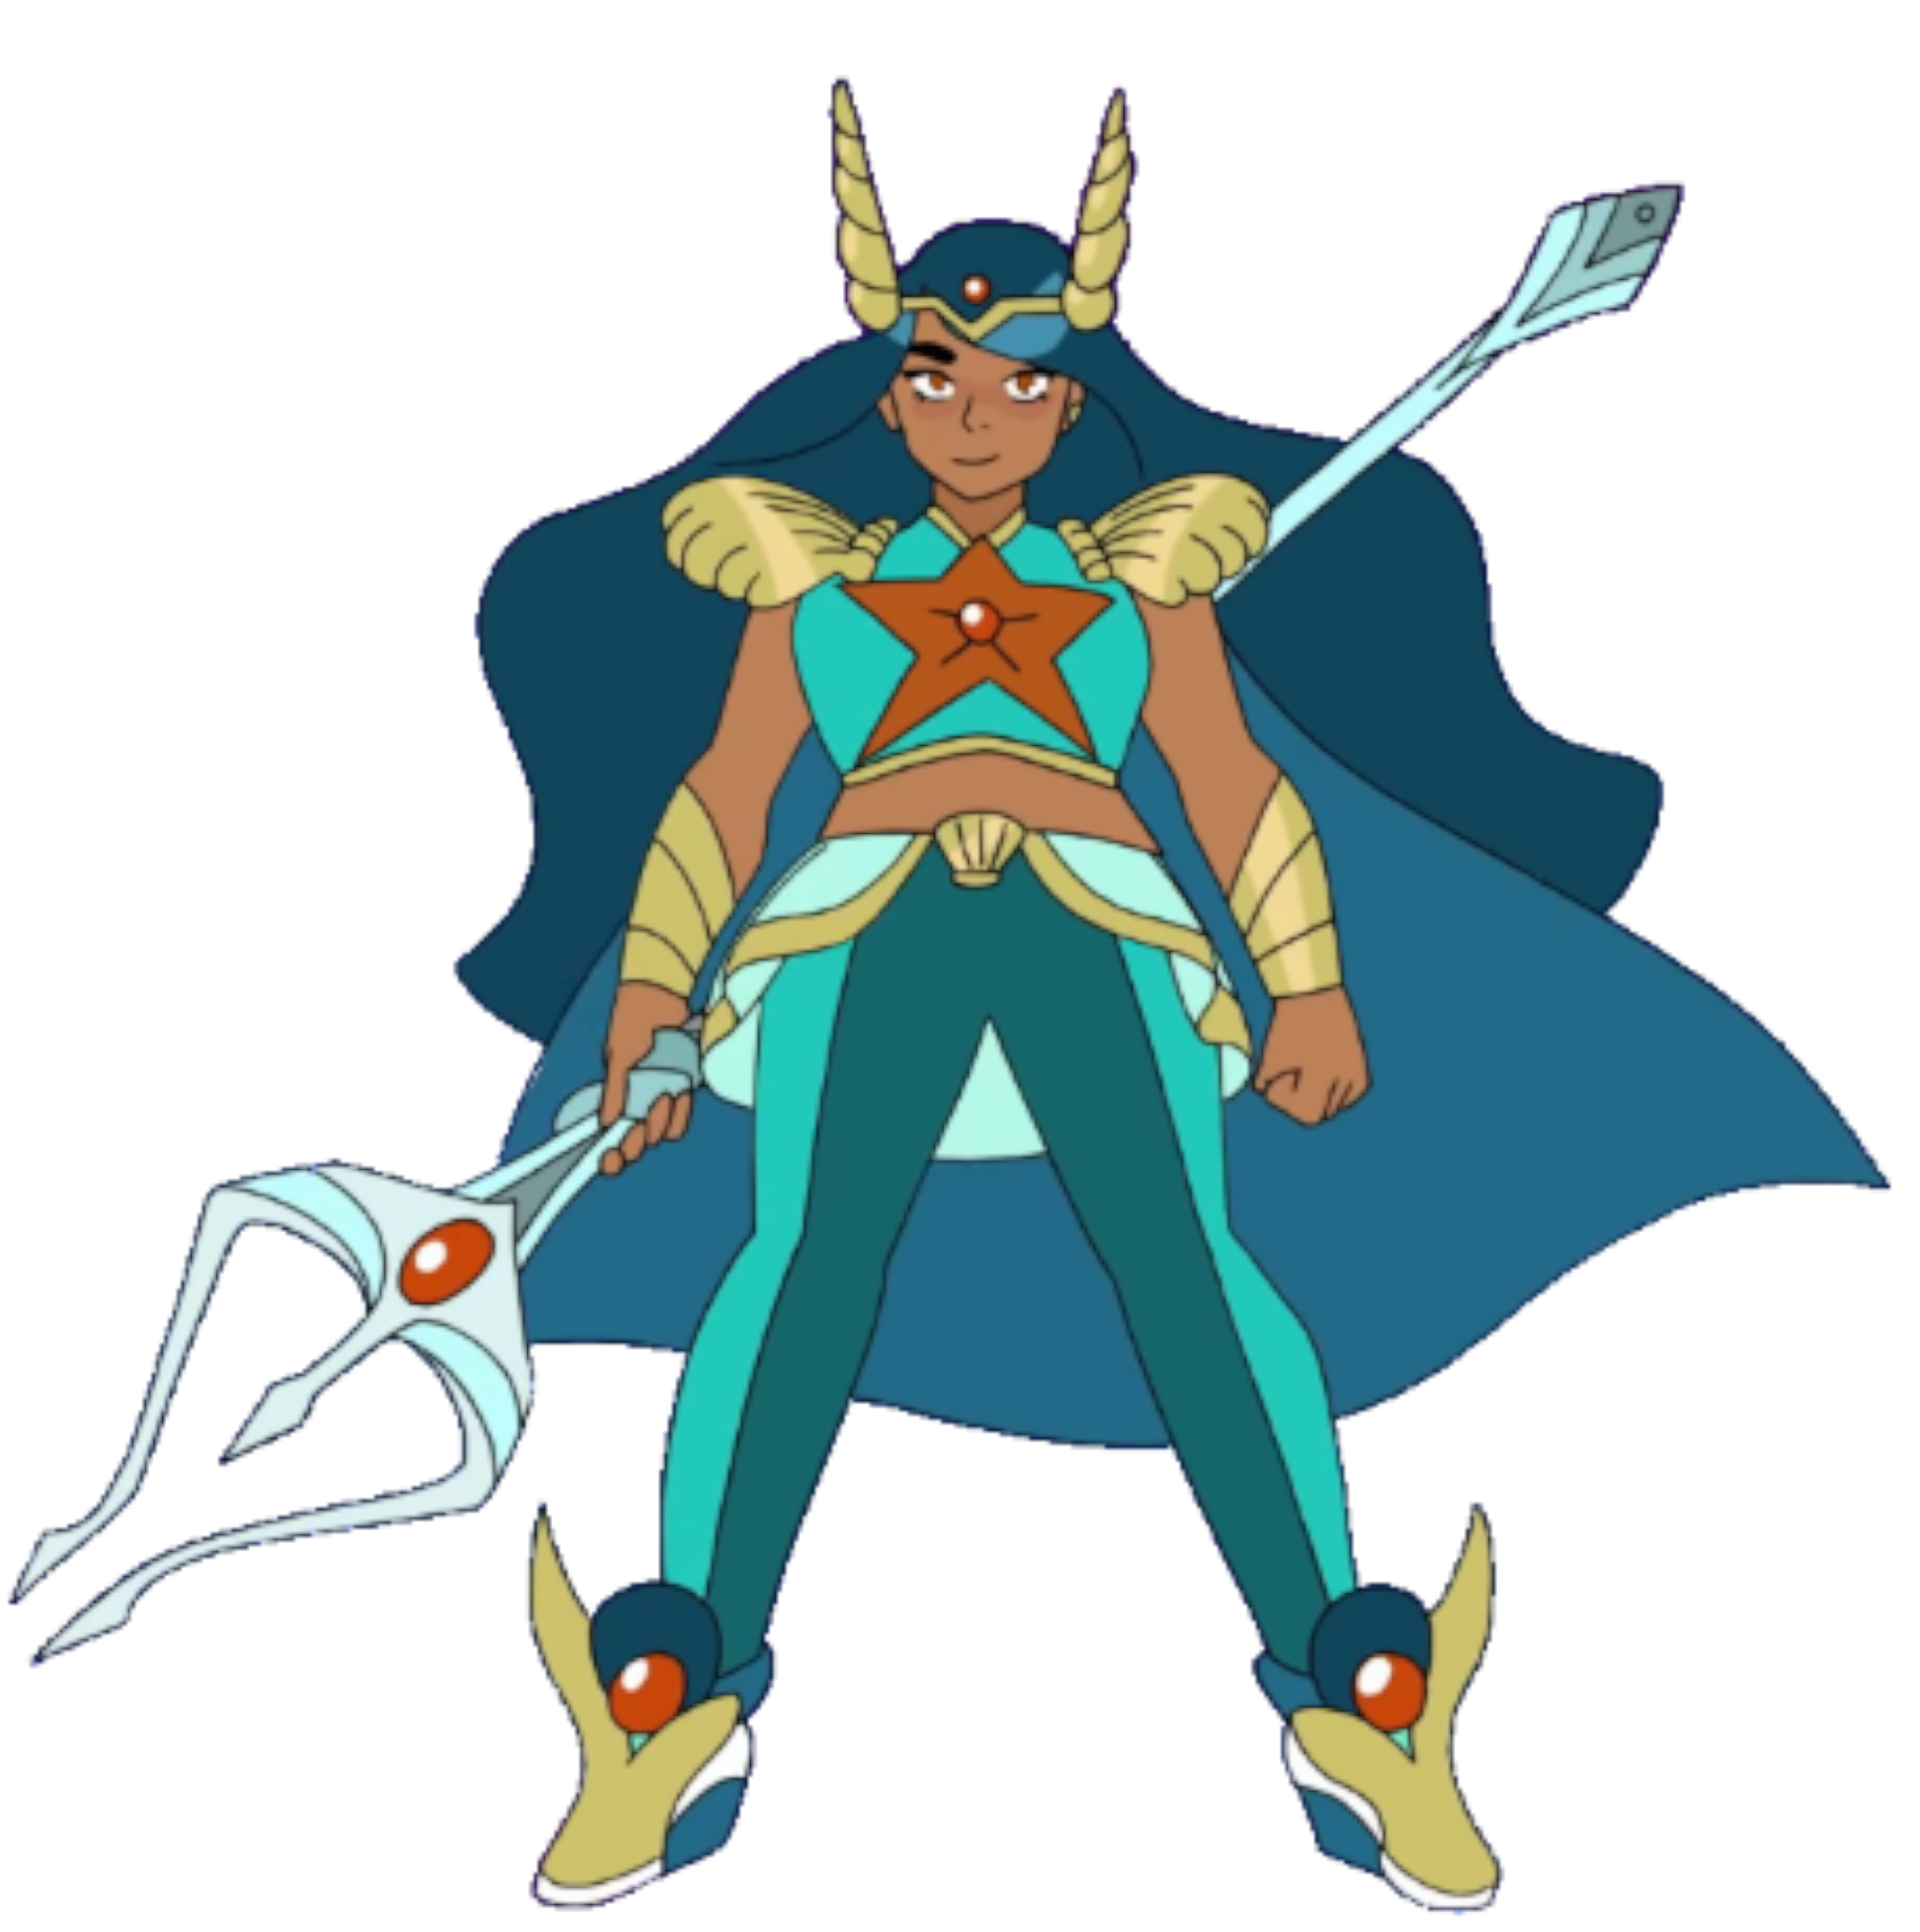 Mermista She Ra And The Princesses Of Power Wiki Fandom The opportunity for a crossover was too good to pass up. she ra and the princesses of power wiki